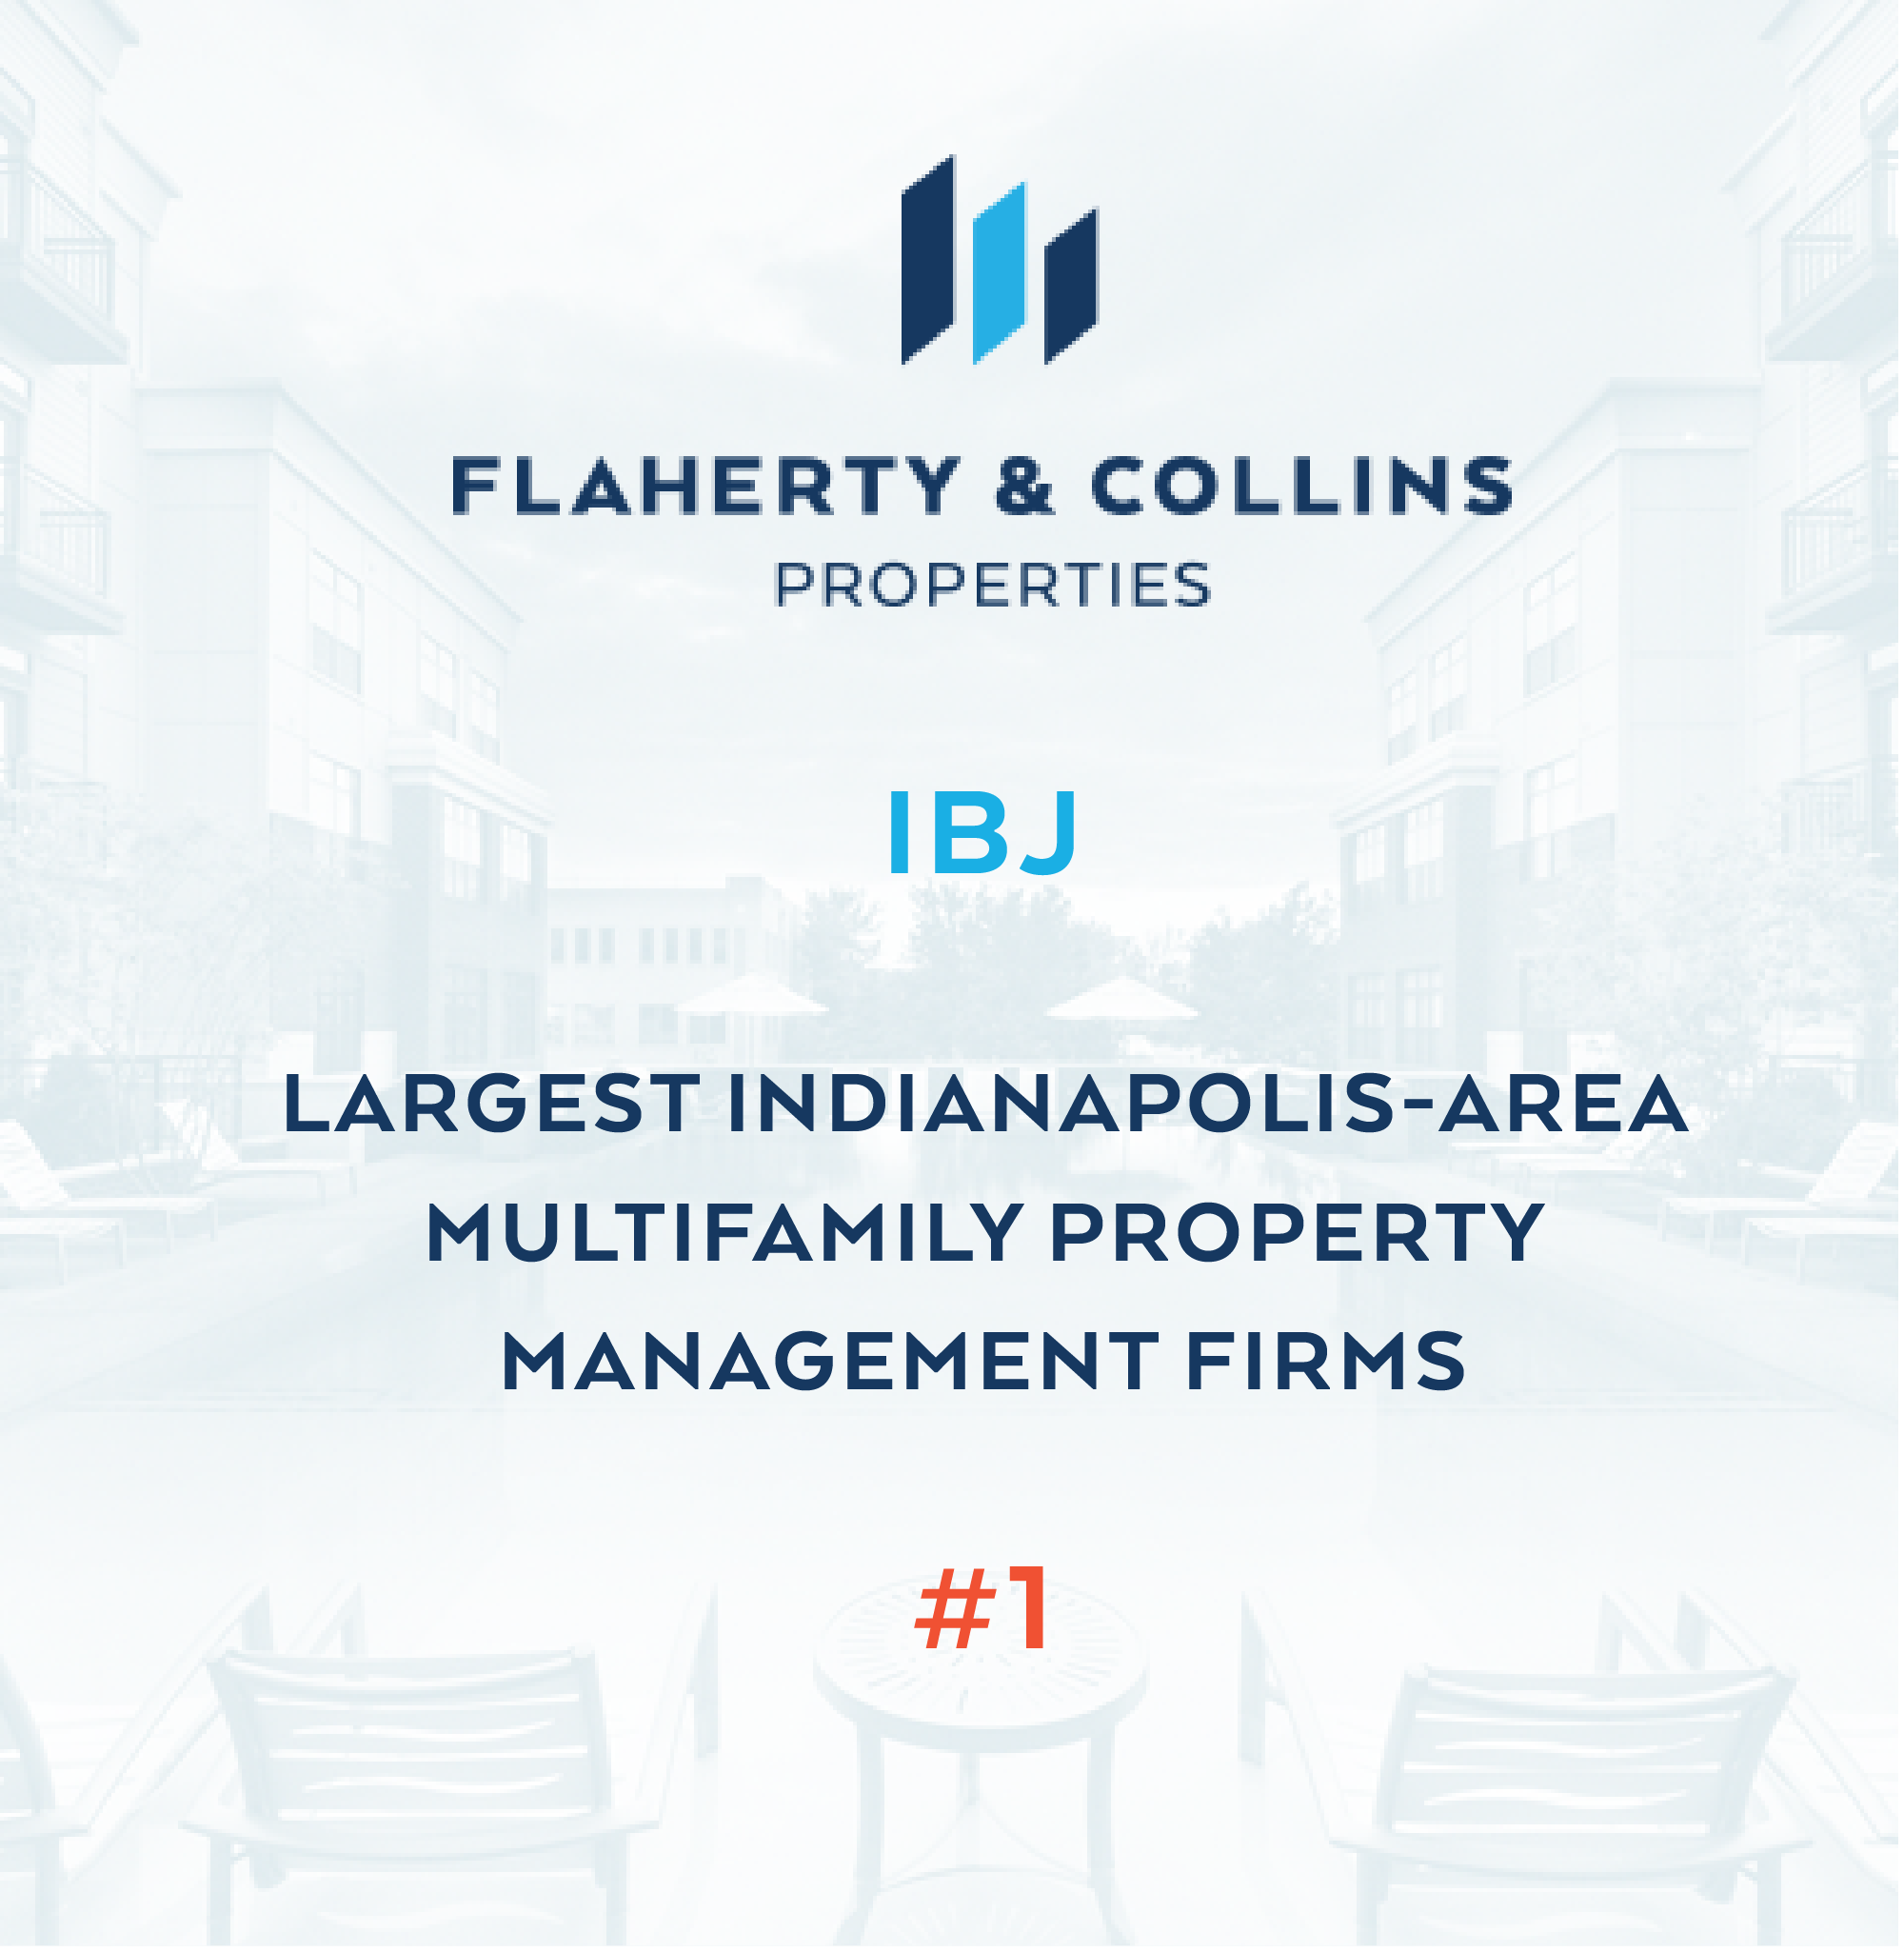 Largest Indianapolis-Area Multifamily Property Management Firms